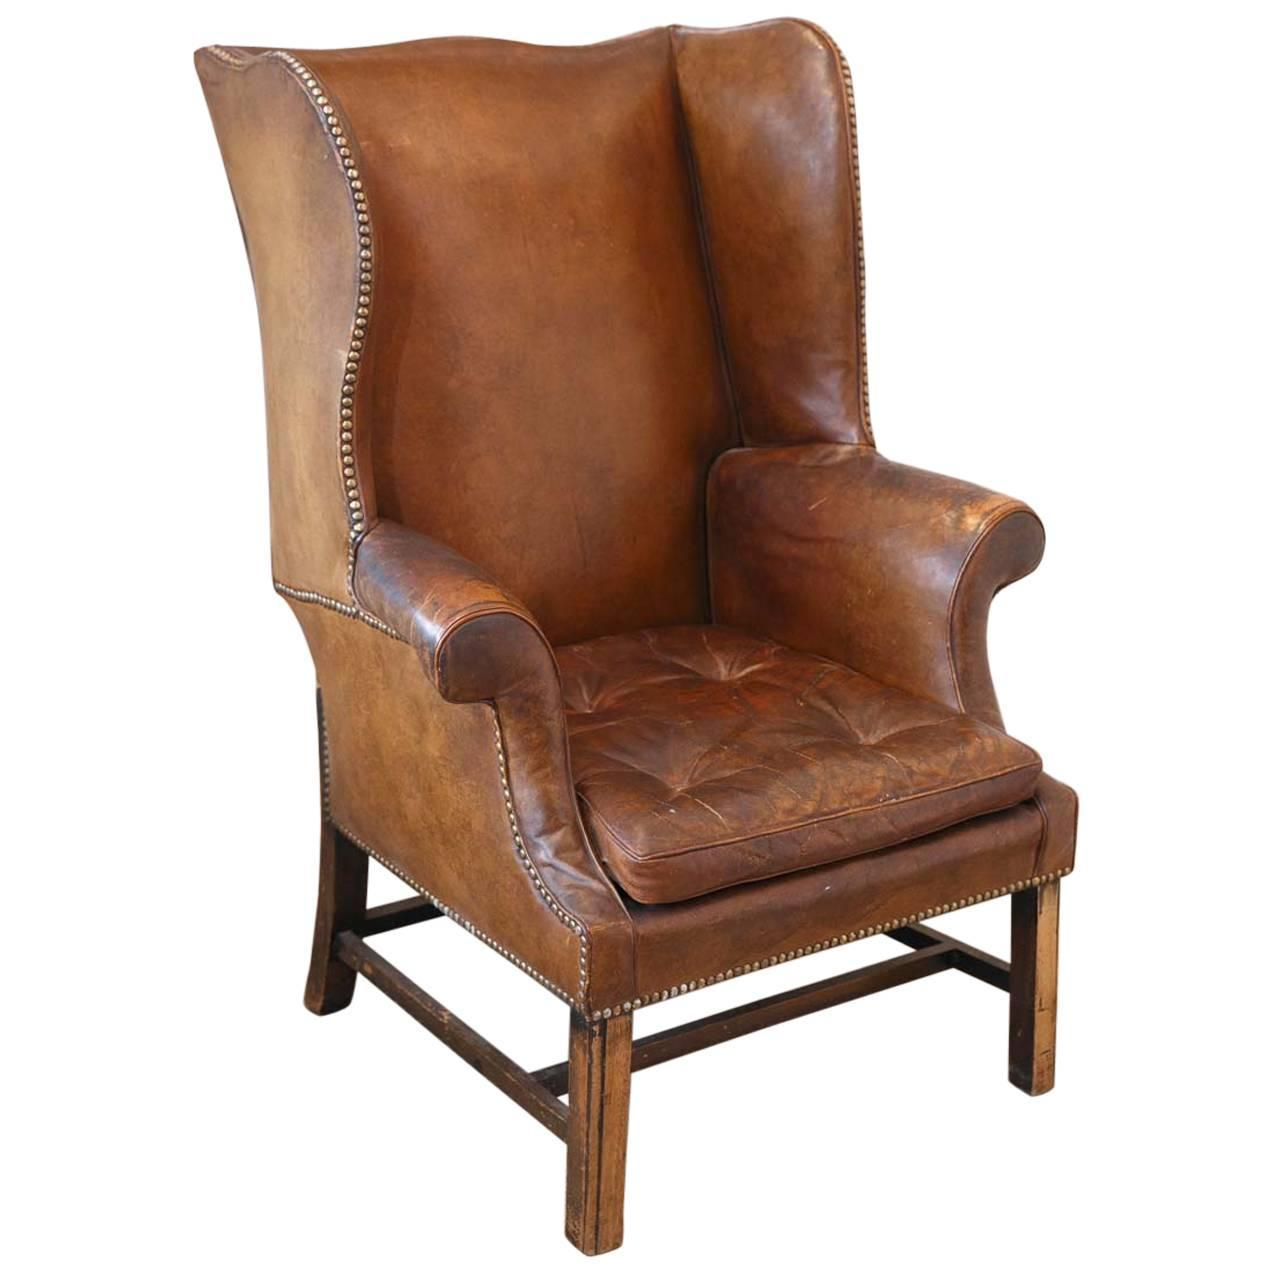 French Leather Wingback Chair From The 1920s At 1stdibs